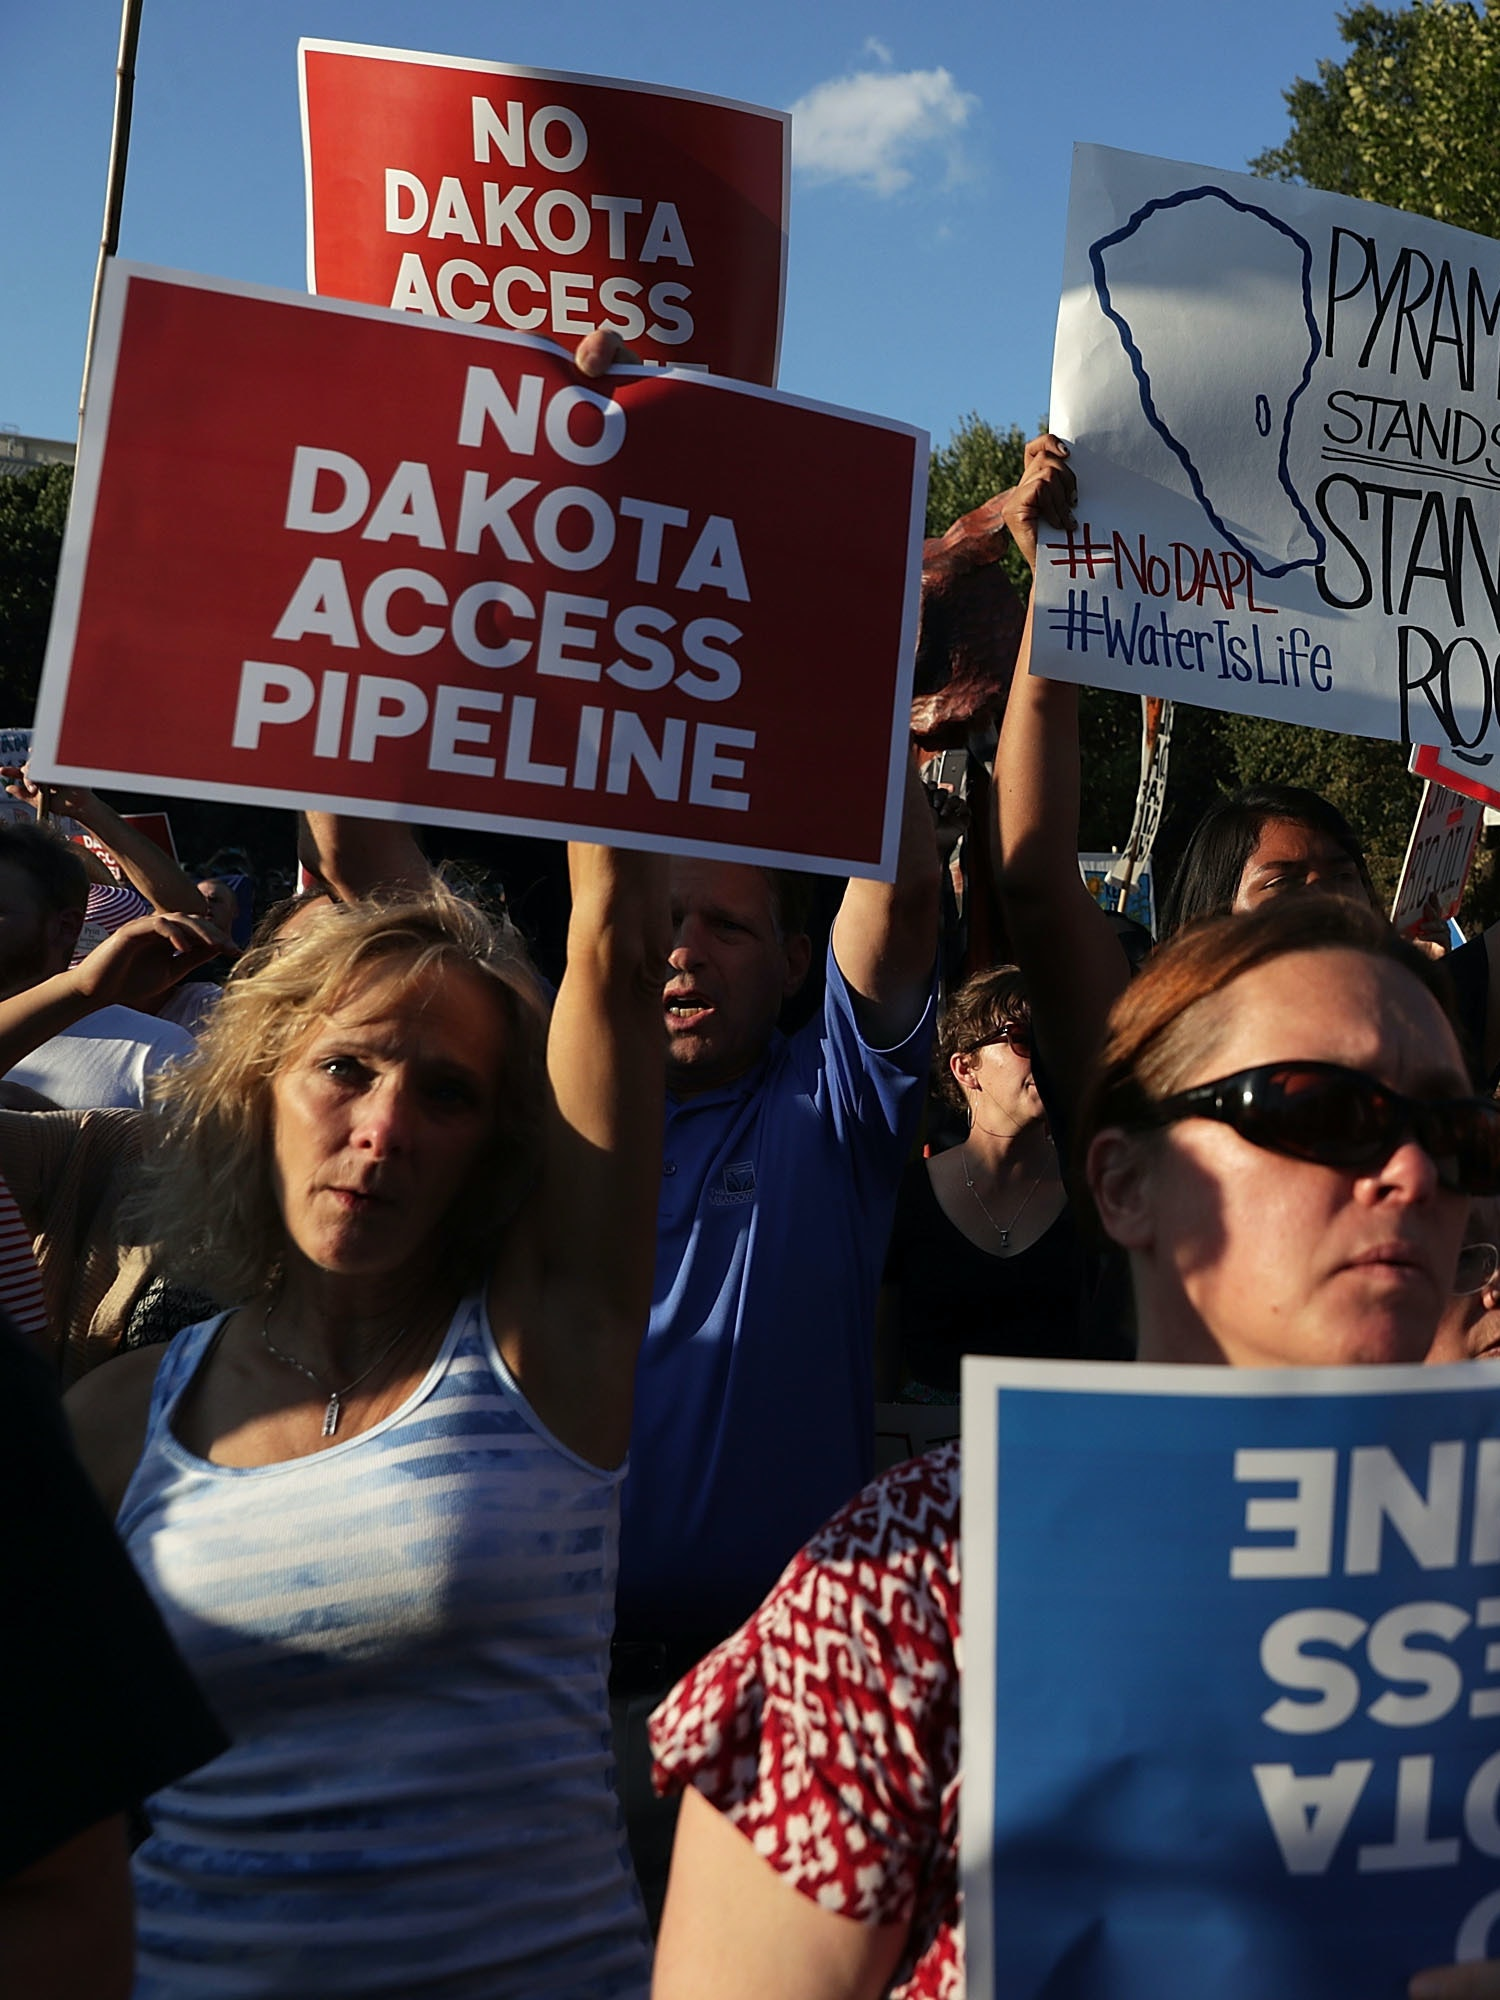 WASHINGTON, DC - SEPTEMBER 13:  Activists gather in front of the White House during a rally against the Dakota Access Pipeline September 13, 2016 in Washington, DC. Activists held a rally to call on President Barack Obama to stop the Dakota Access Pipeline.  (Photo by Alex Wong/Getty Images)